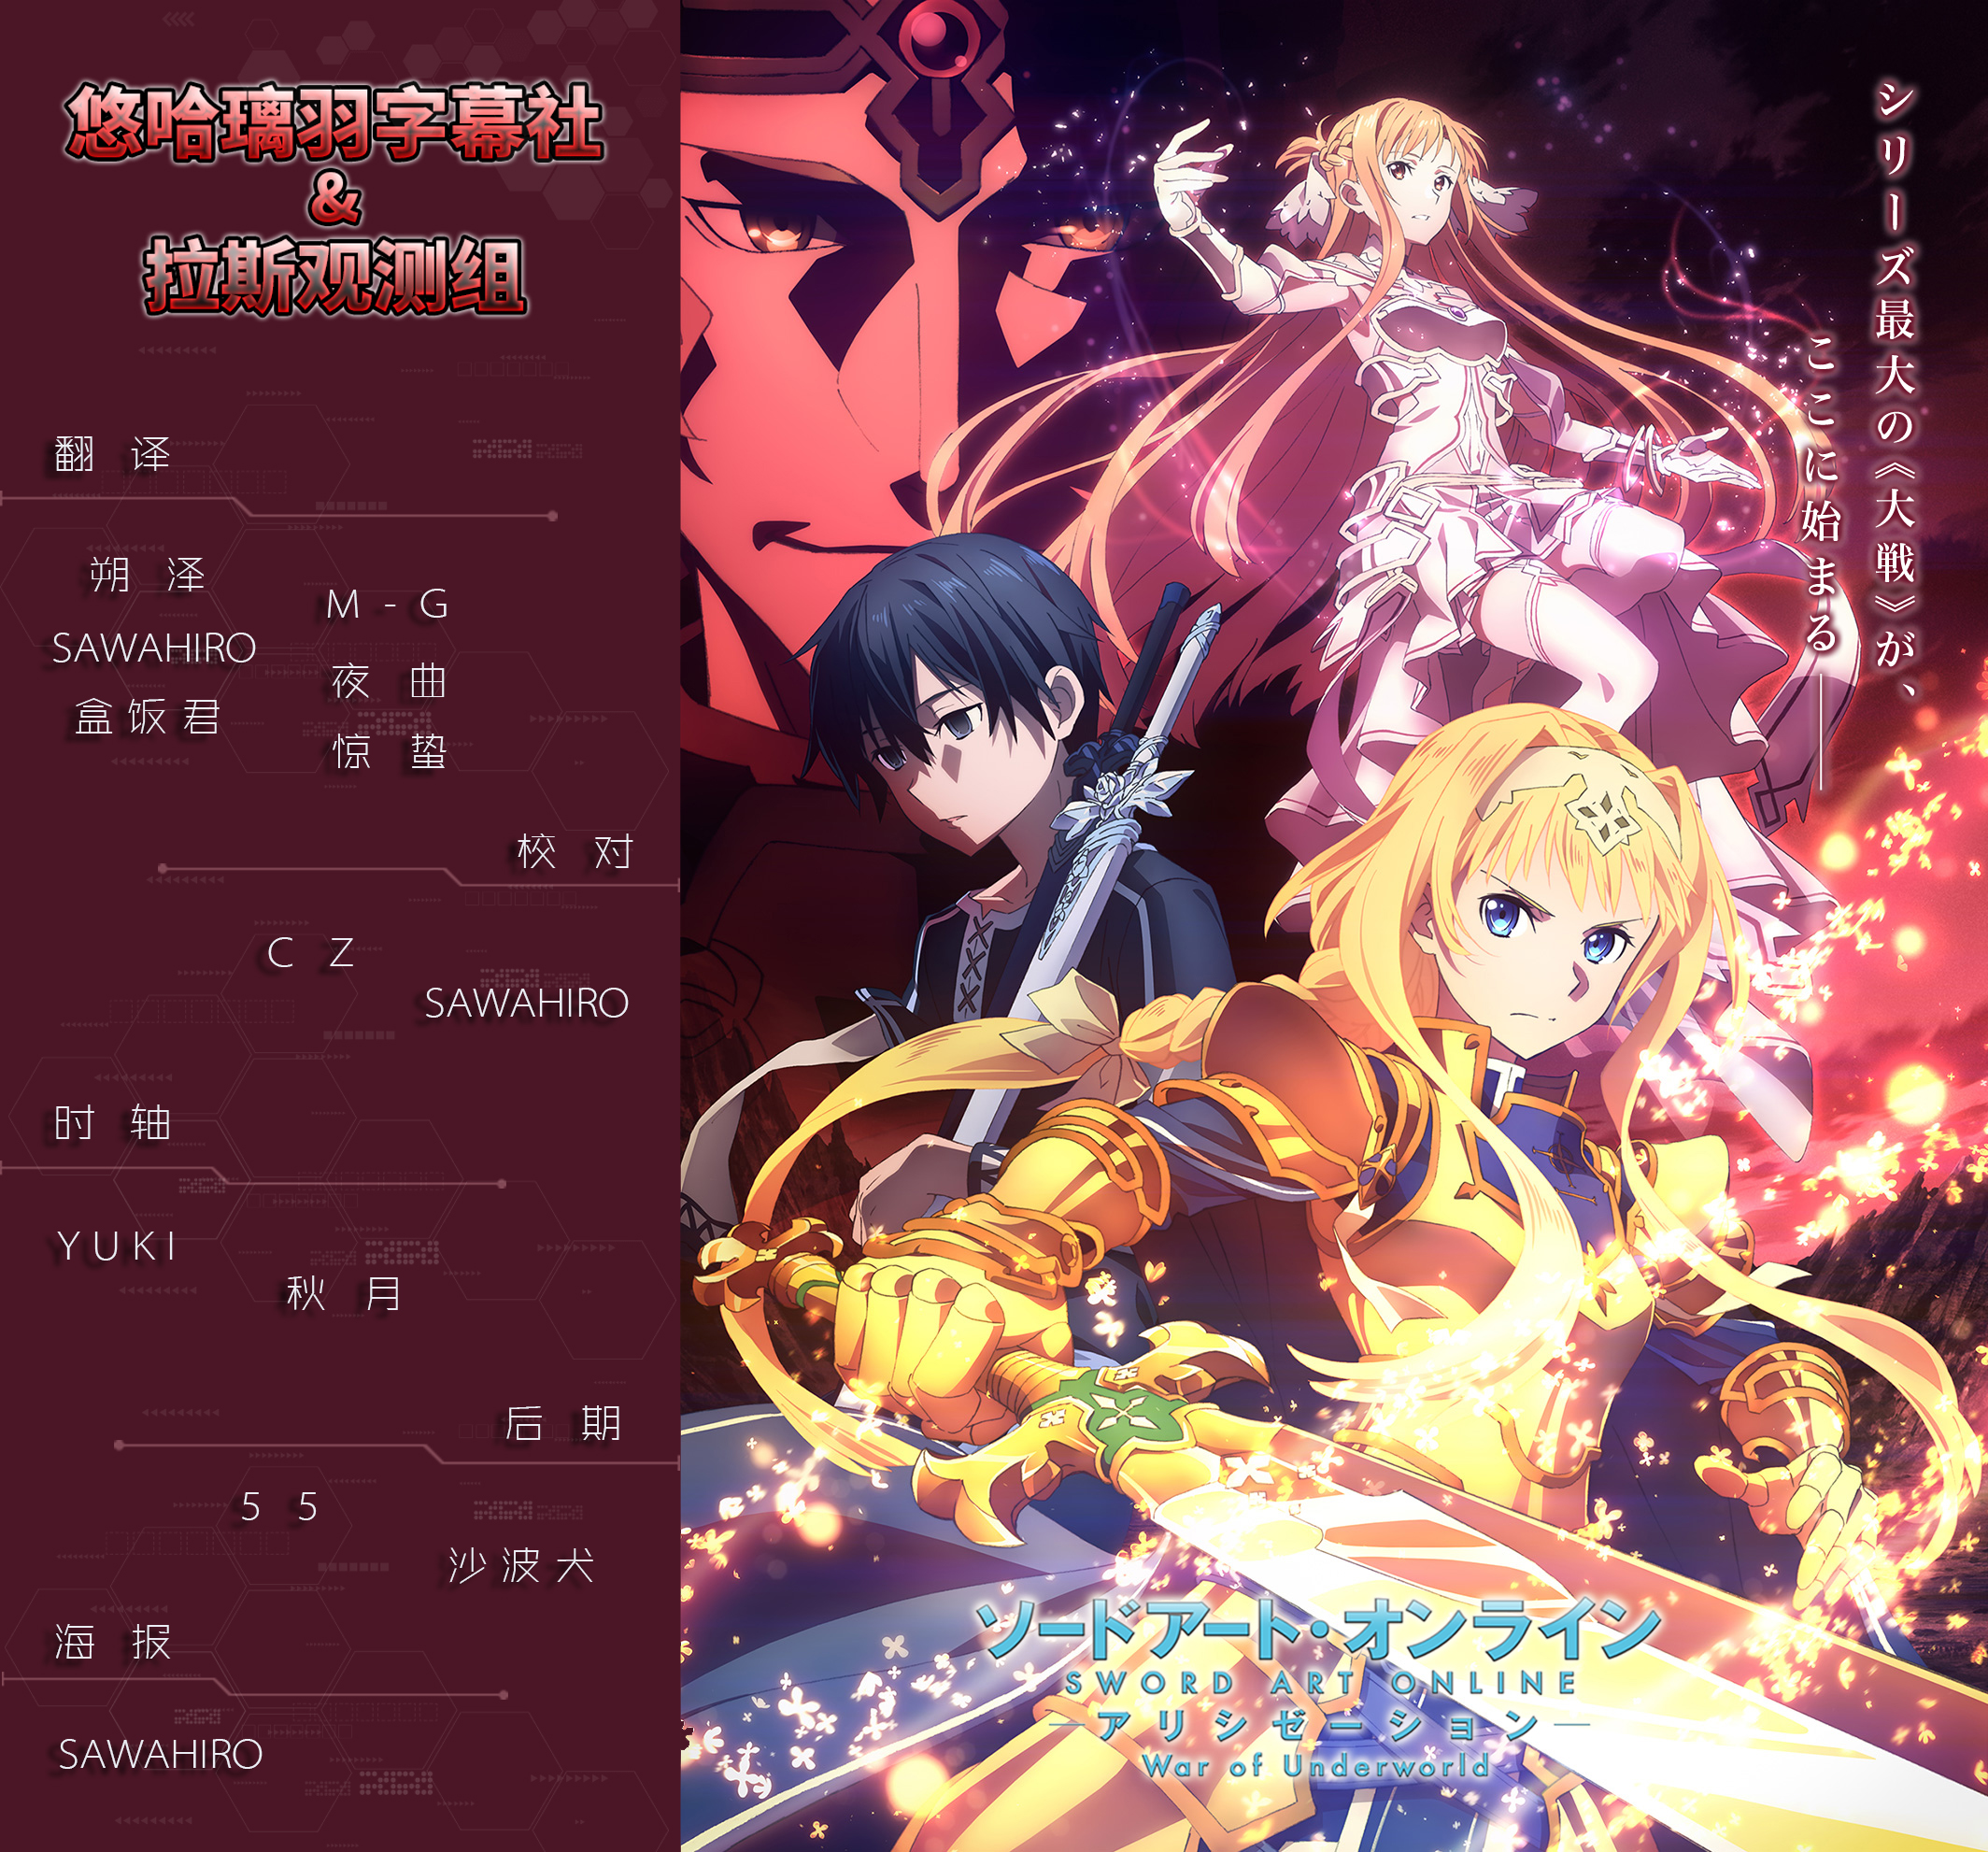 【悠哈璃羽字幕社&拉斯观测组】[刀剑神域 Alicization_Sword Art Online - Alicization  - War of Underworld -][06][x264 1080p][CHT]